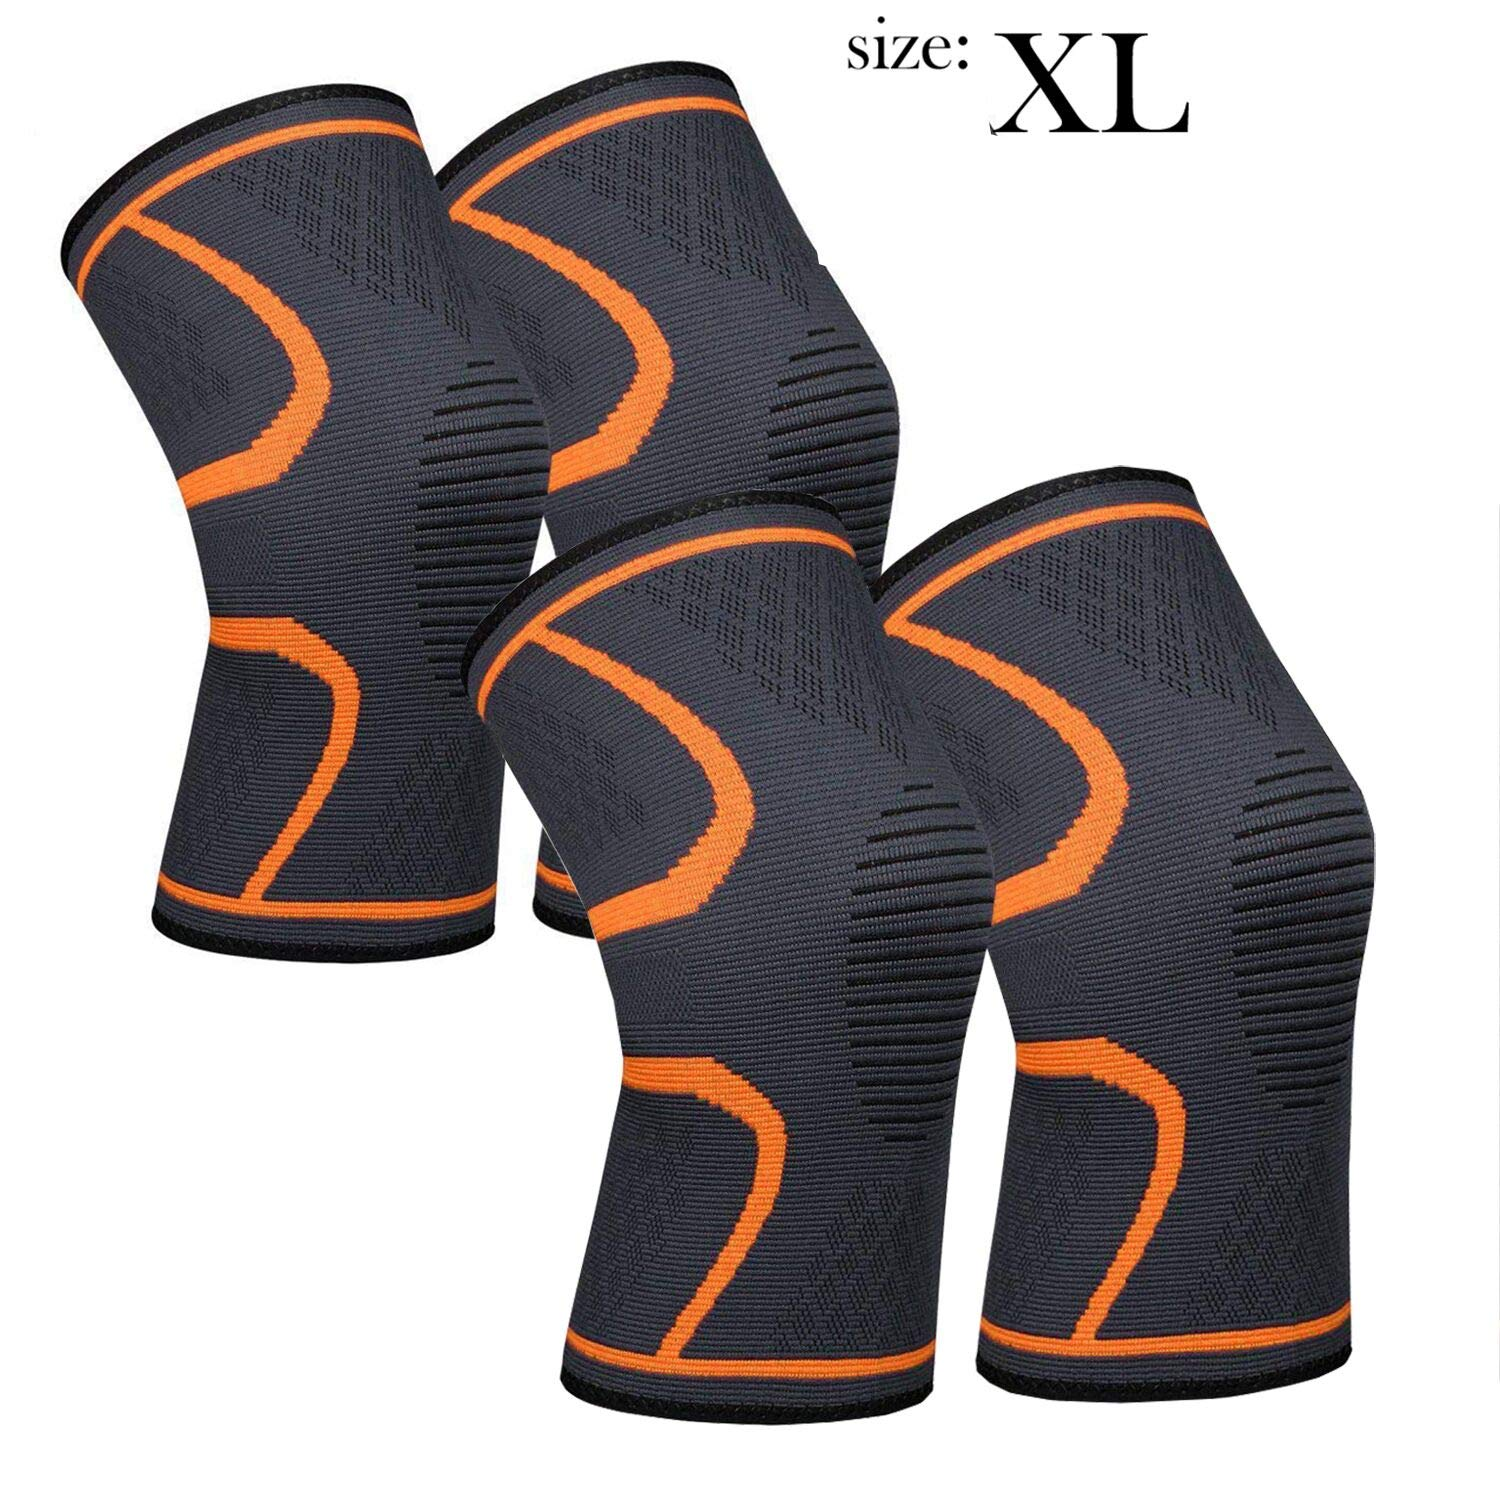 711TEK Knee Sleeves, Knee Brace for Joint Pain and Arthritis Relief, Improved Circulation Compression - Wear Anywhere(Orange-XL-4Pcs)